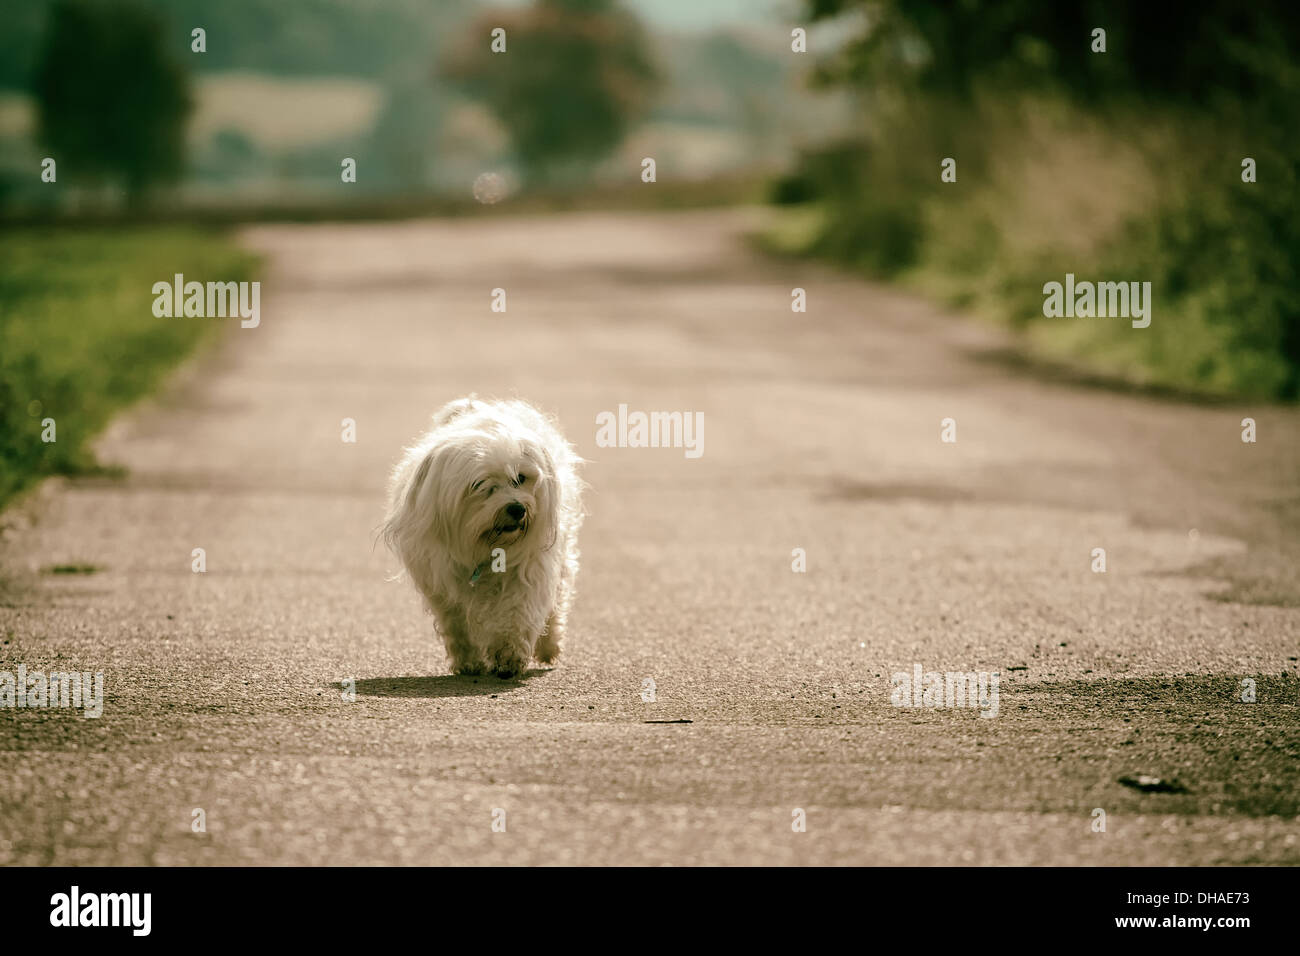 A small dog runs all alone in the sunshine along a road. - Stock Image